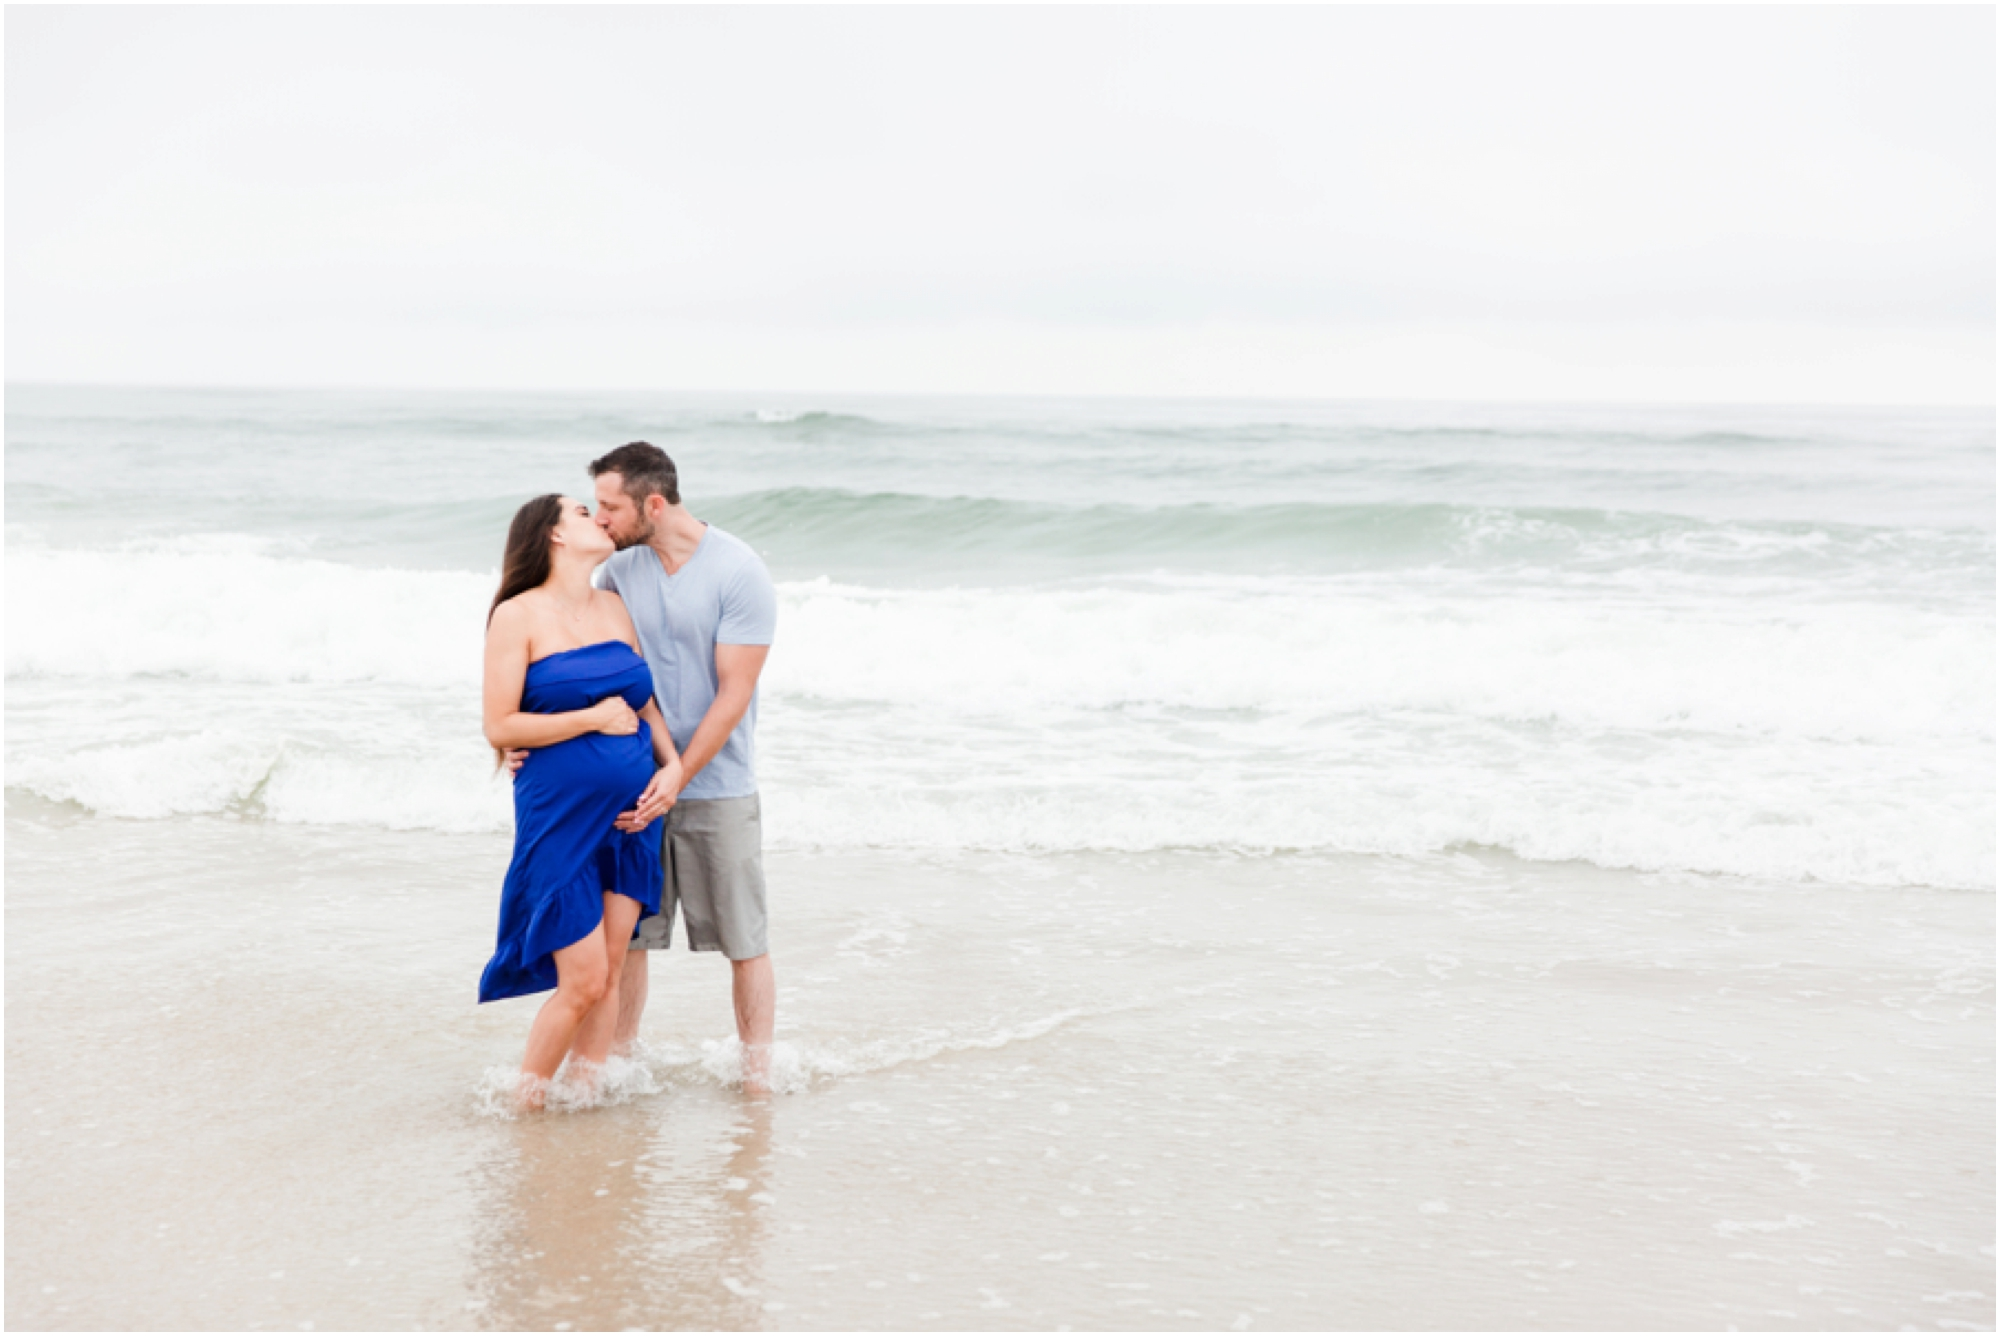 Natural light maternity portraits by Briana Calderon Photography based in the Greater Seattle & Tacoma, WA_0785.jpg